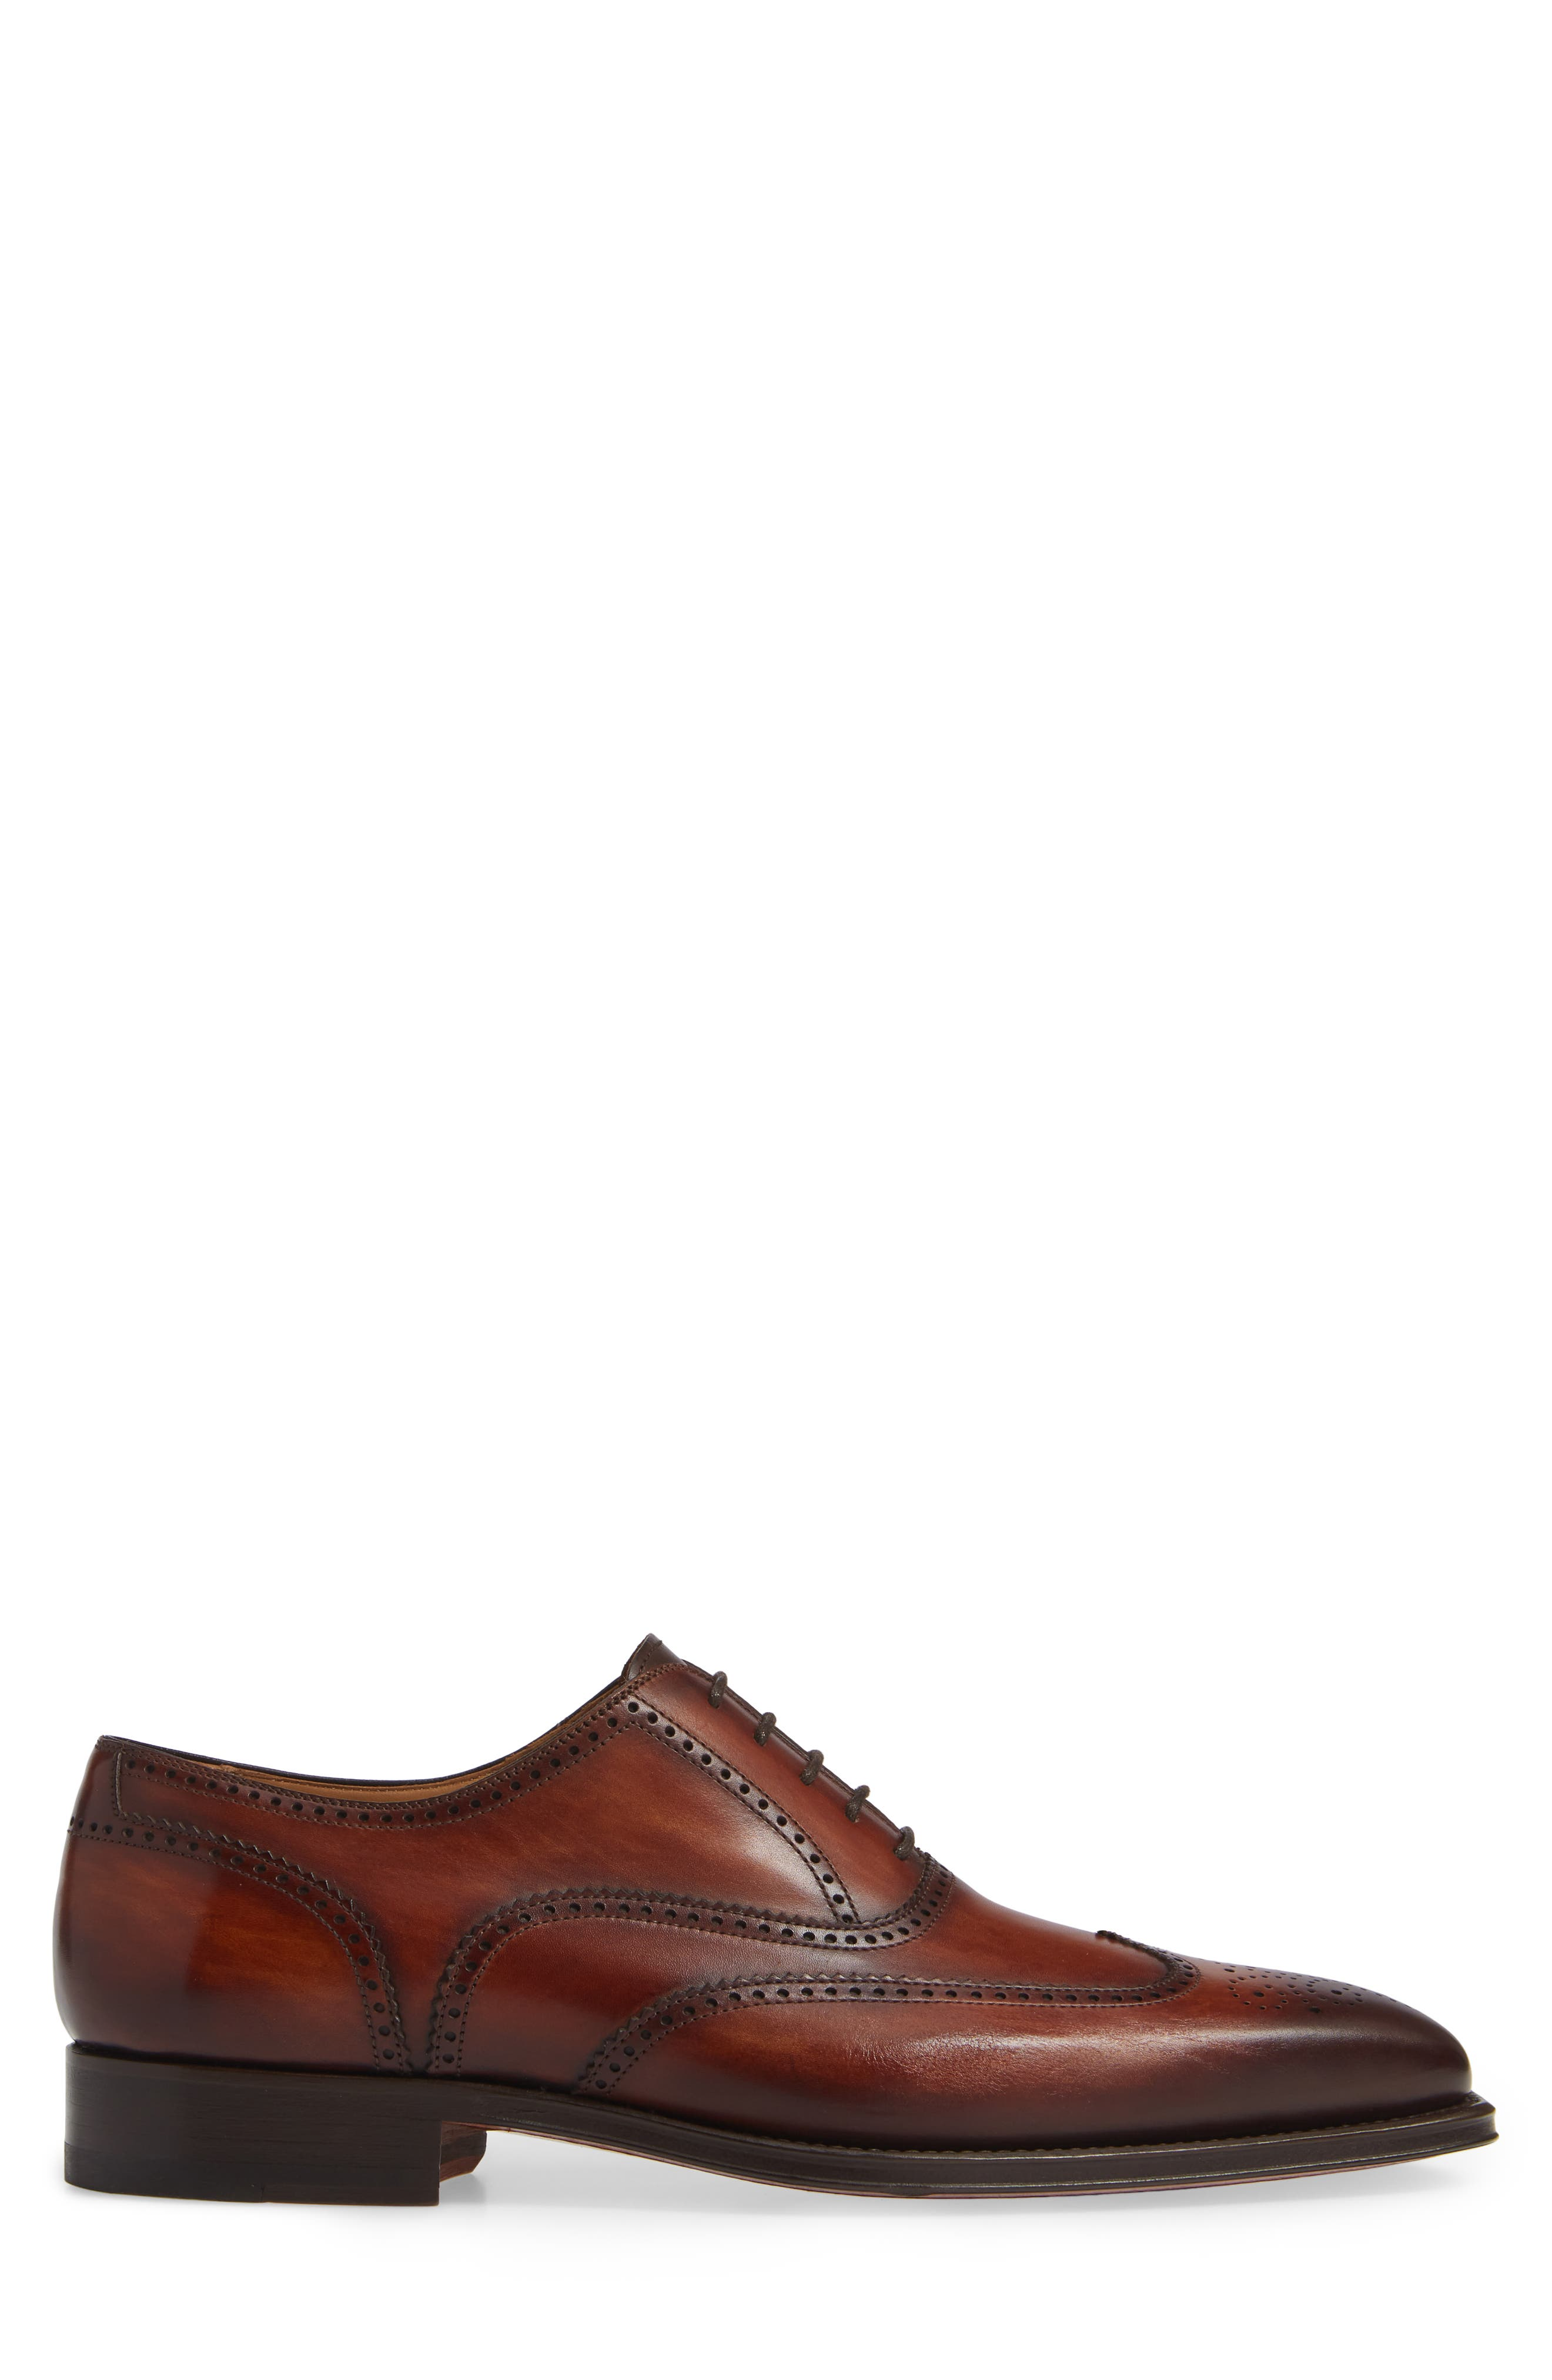 Ledger Wingtip,                             Alternate thumbnail 3, color,                             COGNAC LEATHER